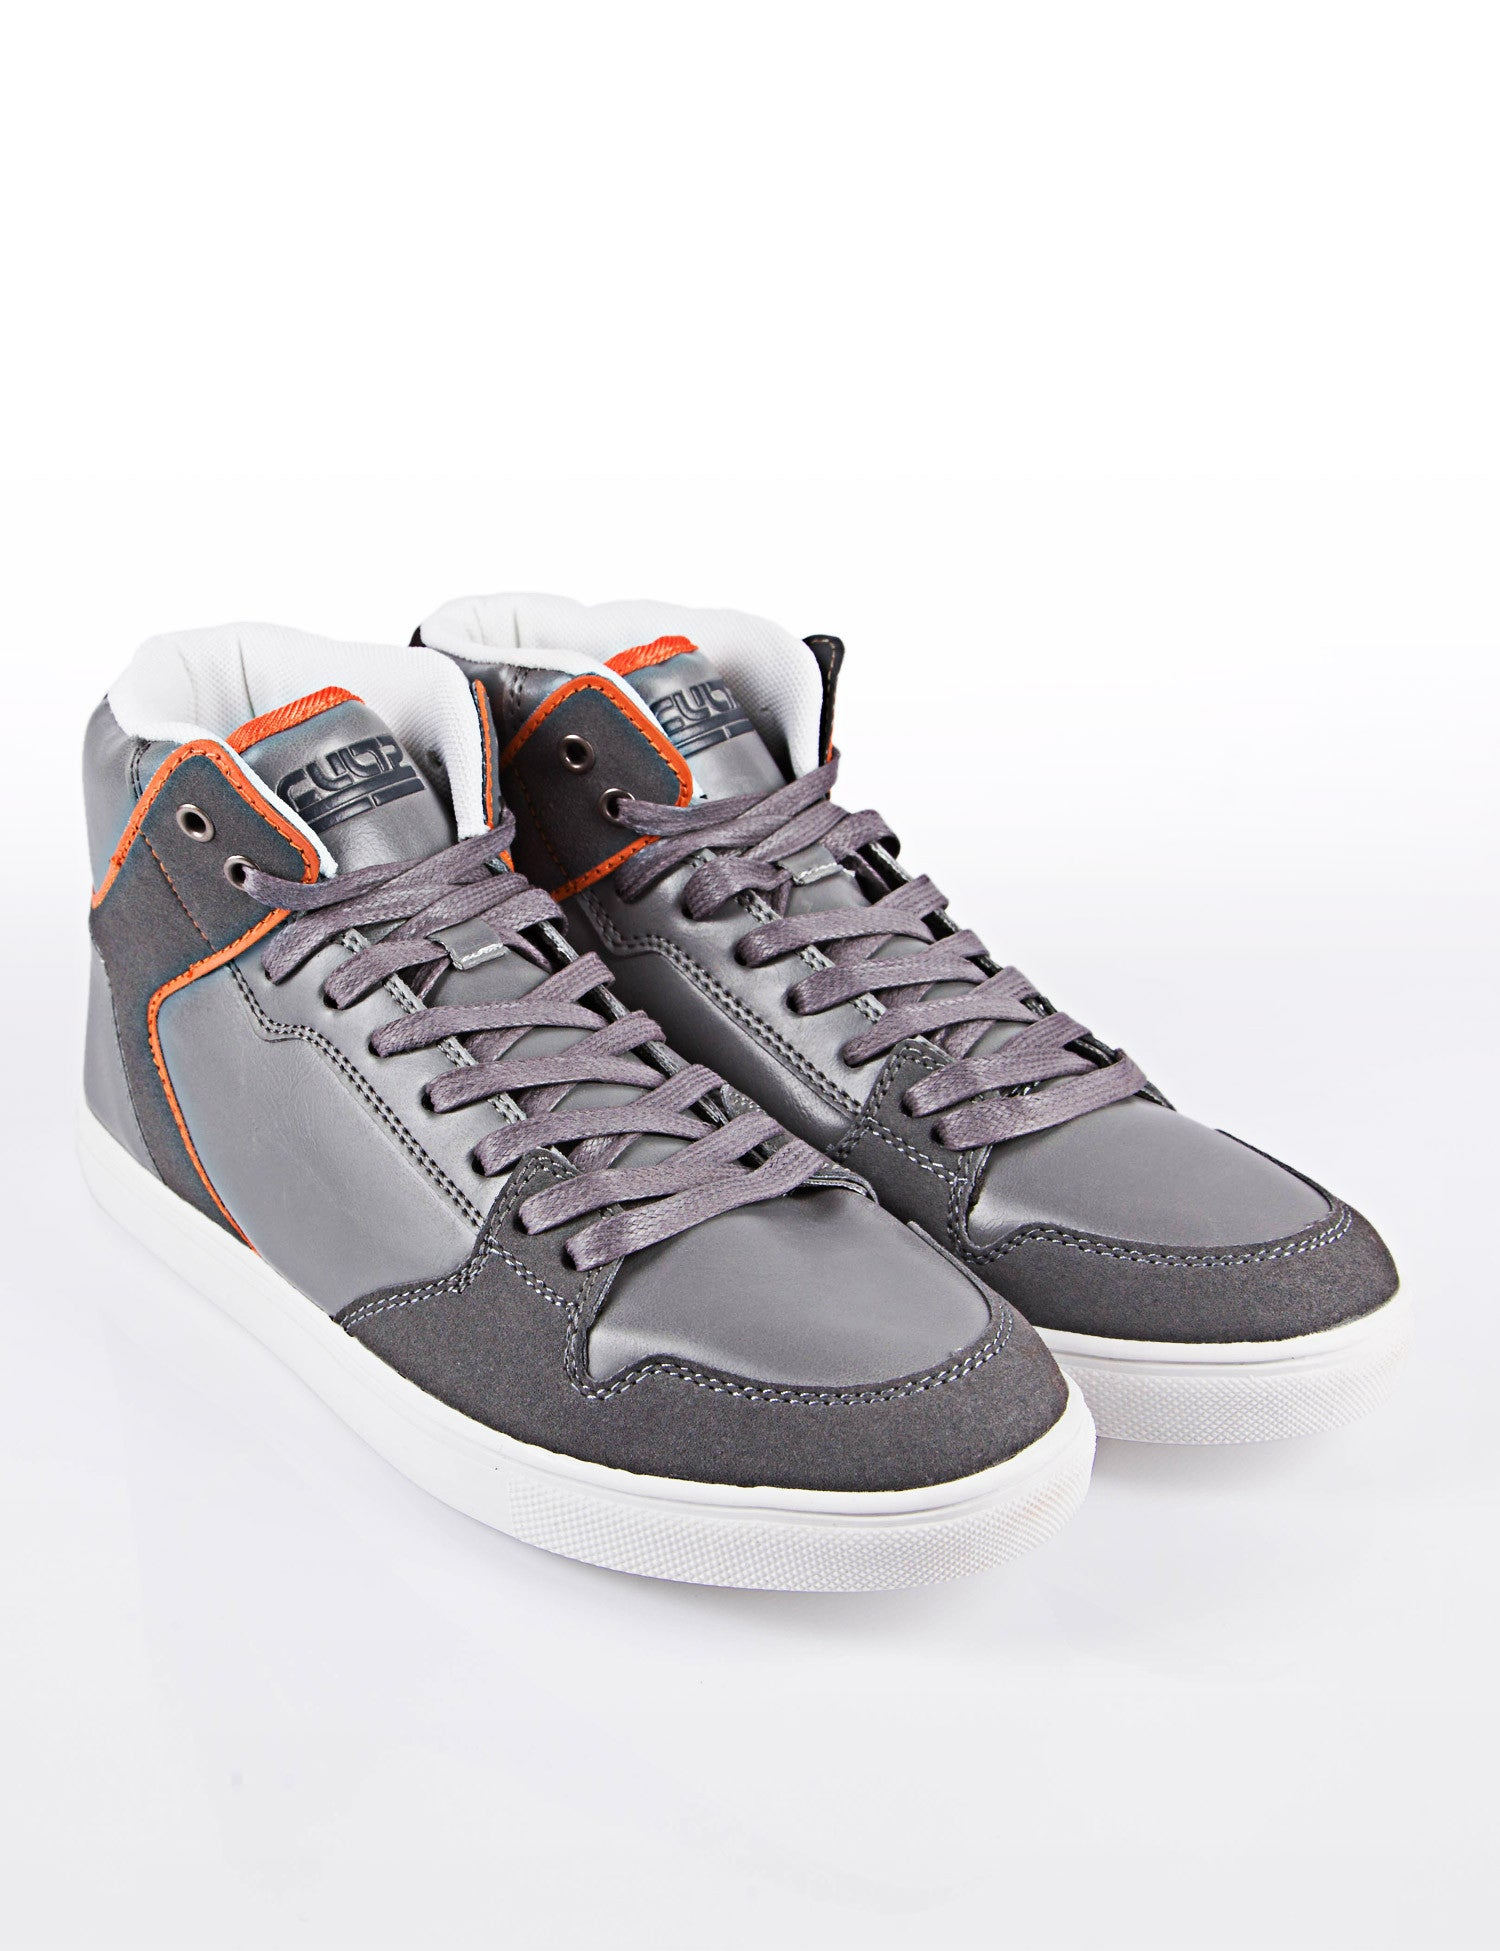 Image of 9-6337 Shoes Light Grey